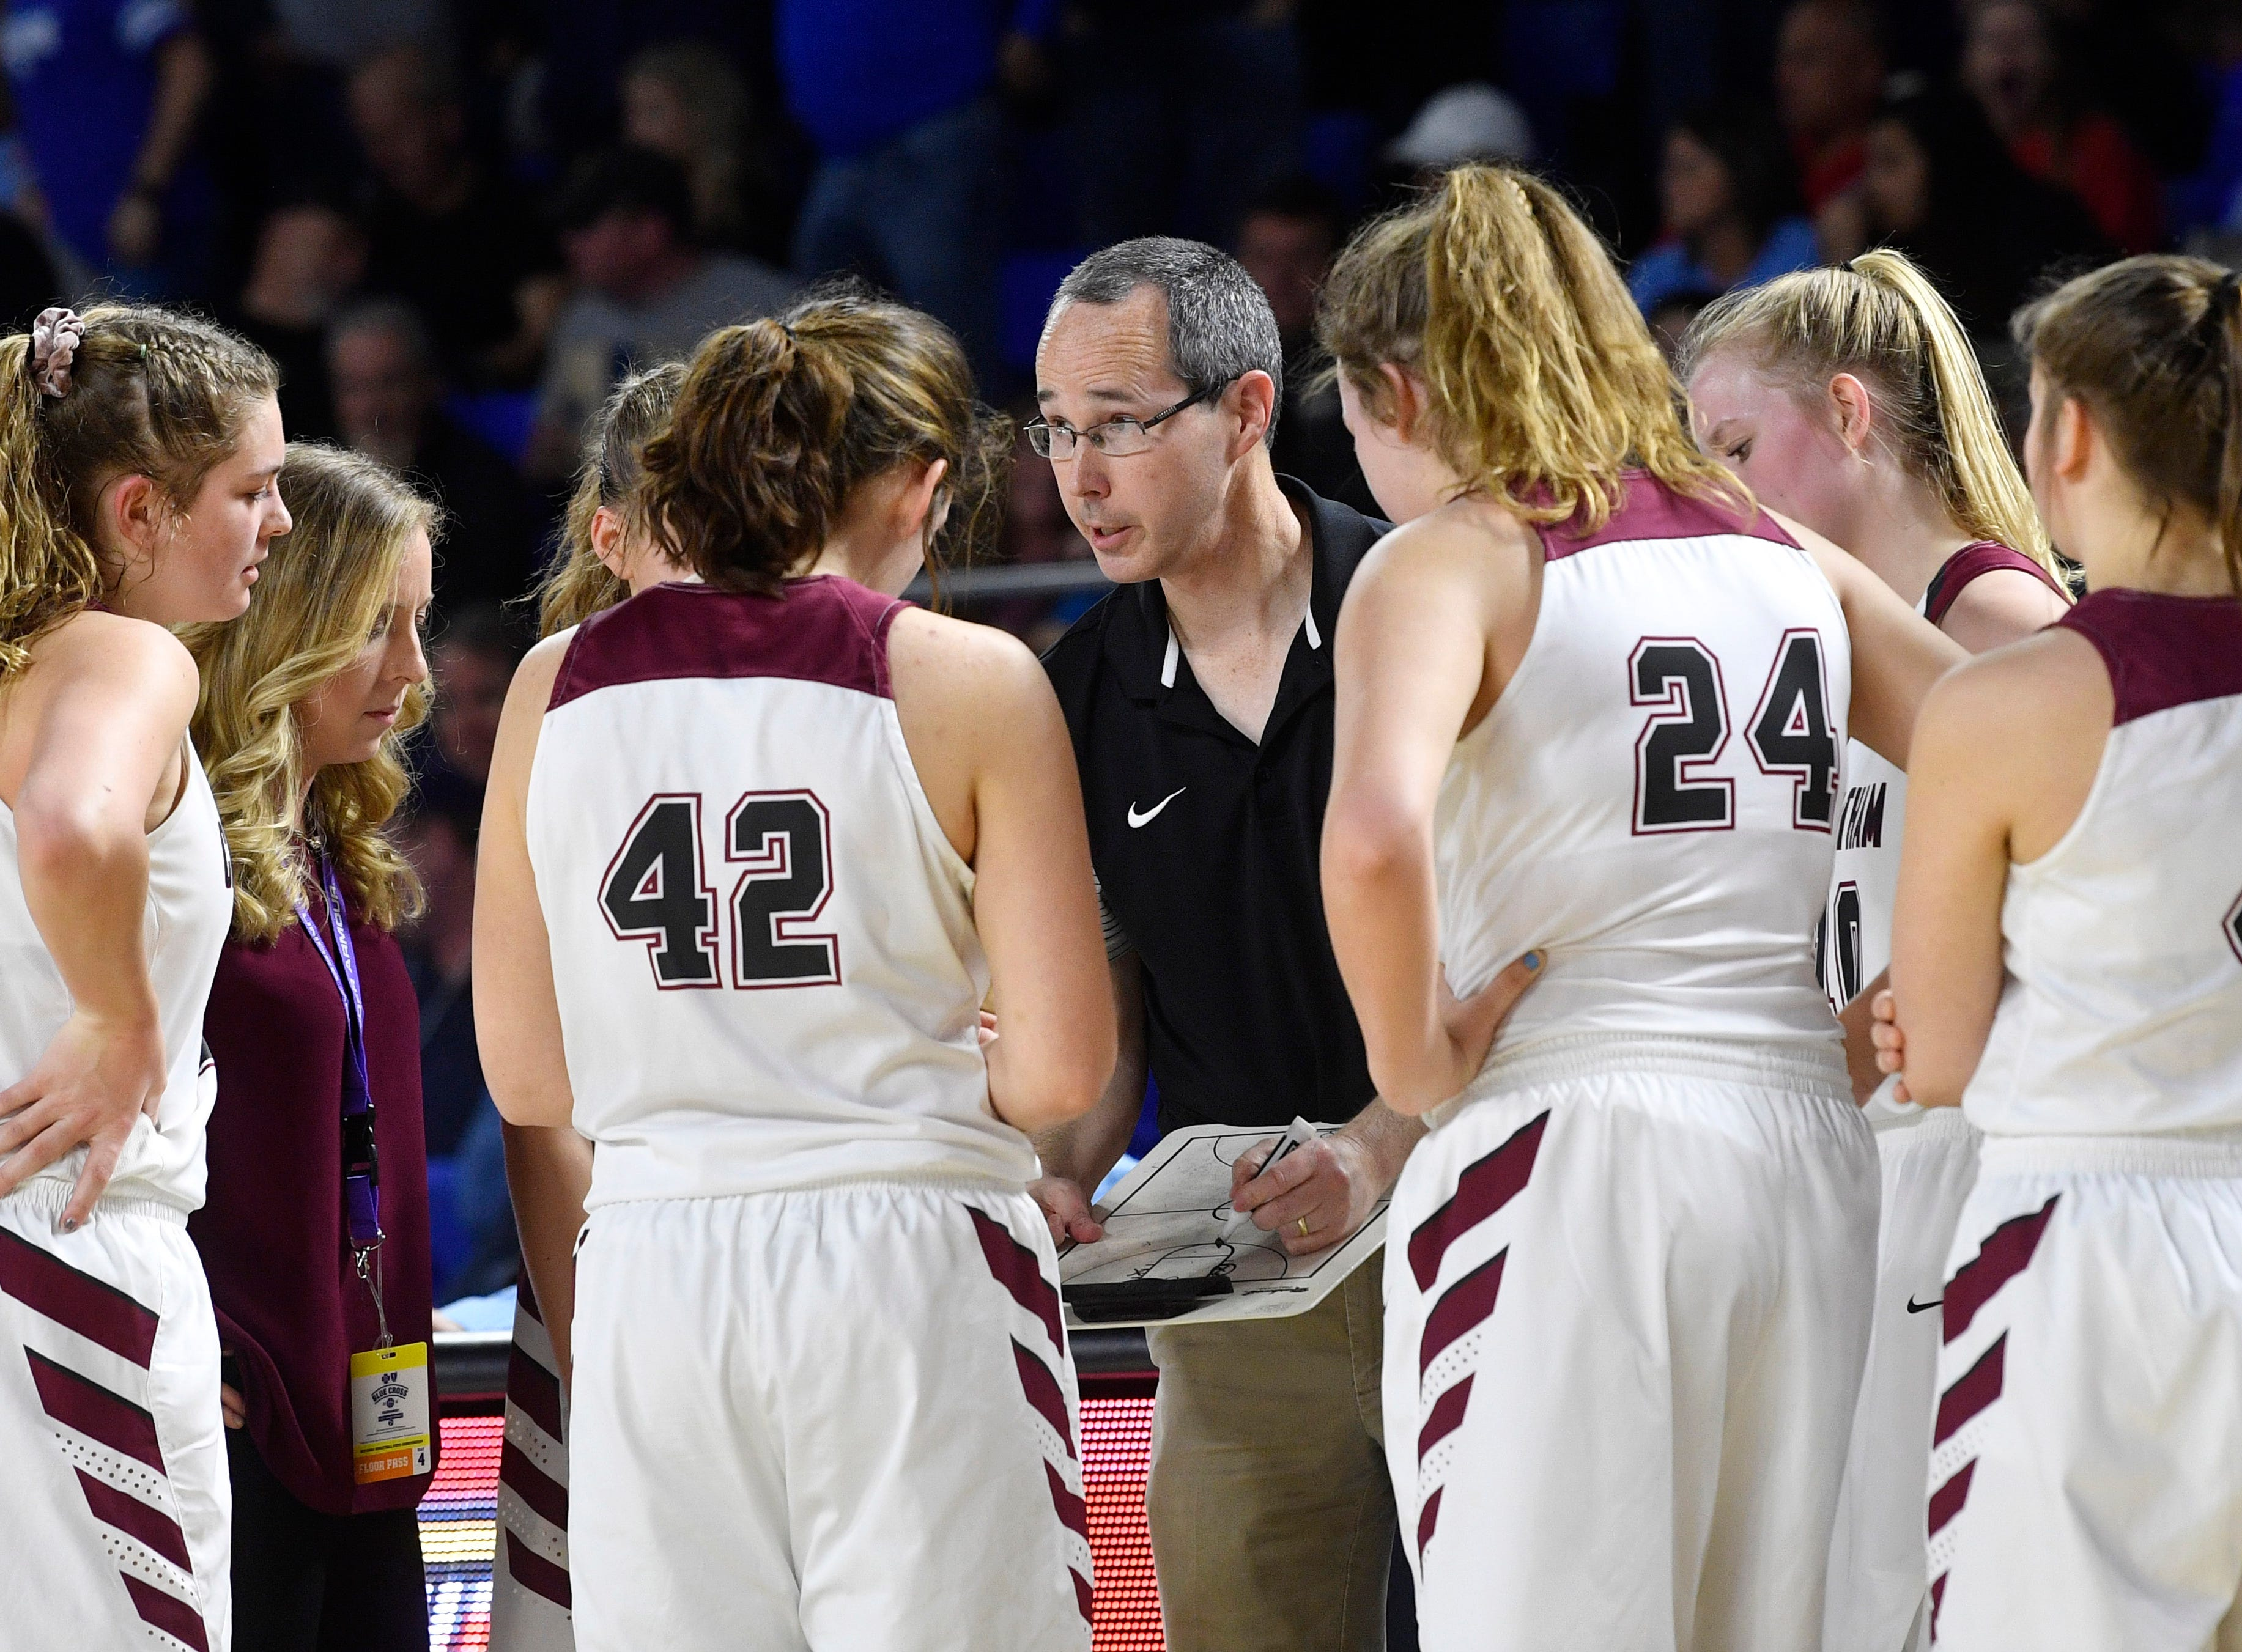 Cheatham County Coach Jim Gibbs talks with is team during a time out as Cheatham County plays Westview in the Class AA Championship Saturday, March 9, 2019, in Murfreesboro, Tenn.